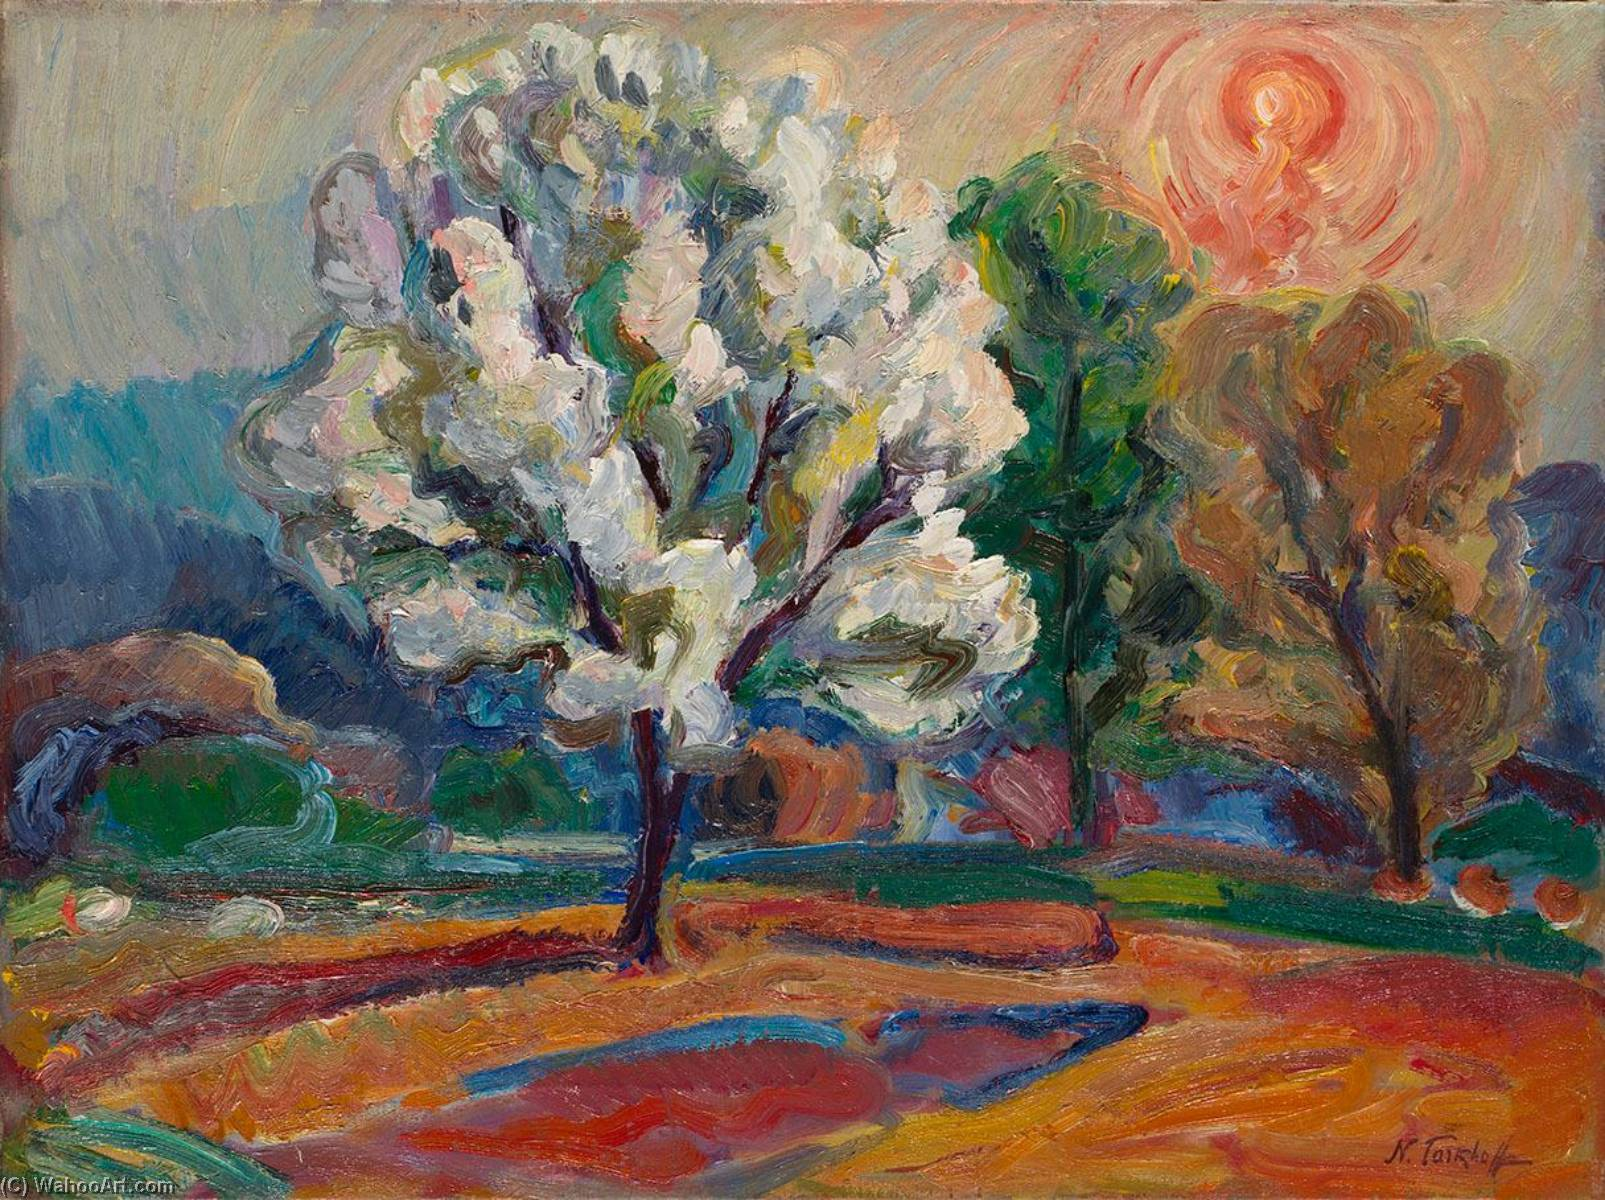 Landscape at Sunset by Nicolas Tarkhoff (1871-1930) | Painting Copy | WahooArt.com